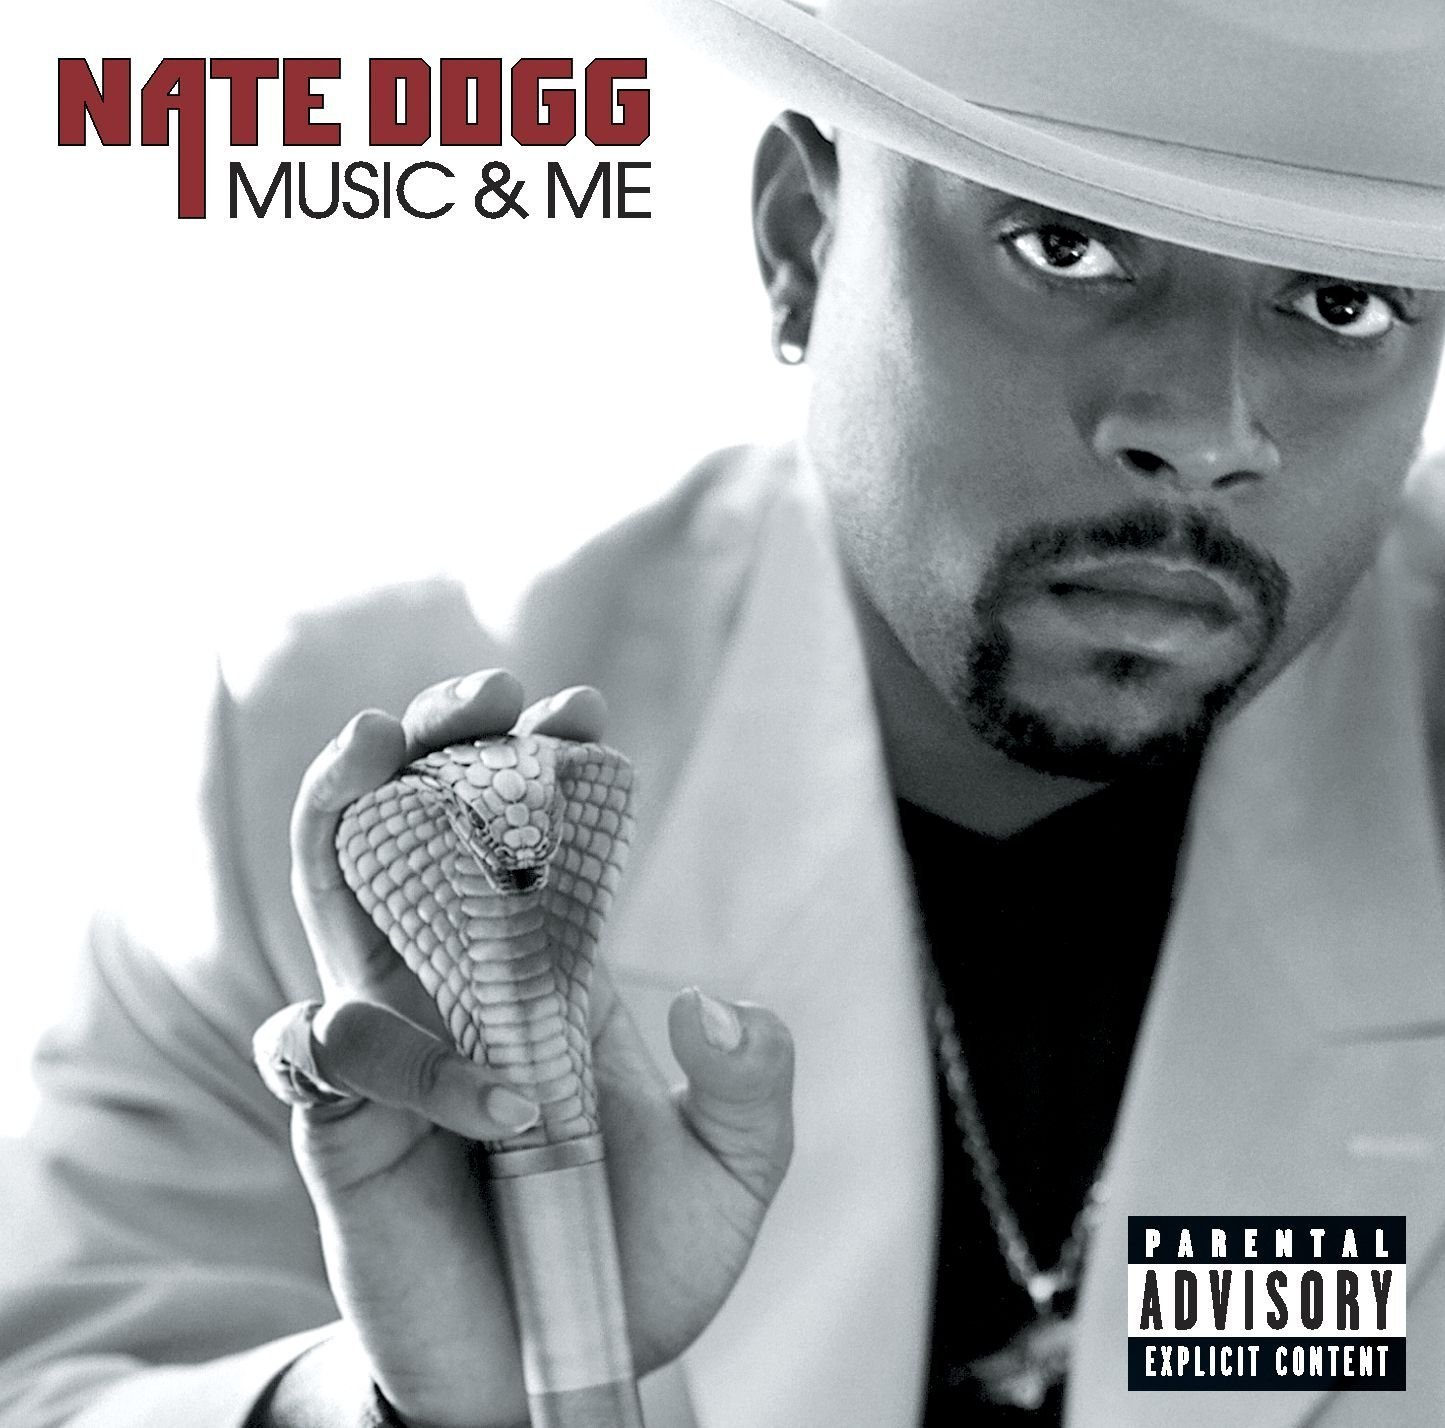 Music & Me Nate Dogg